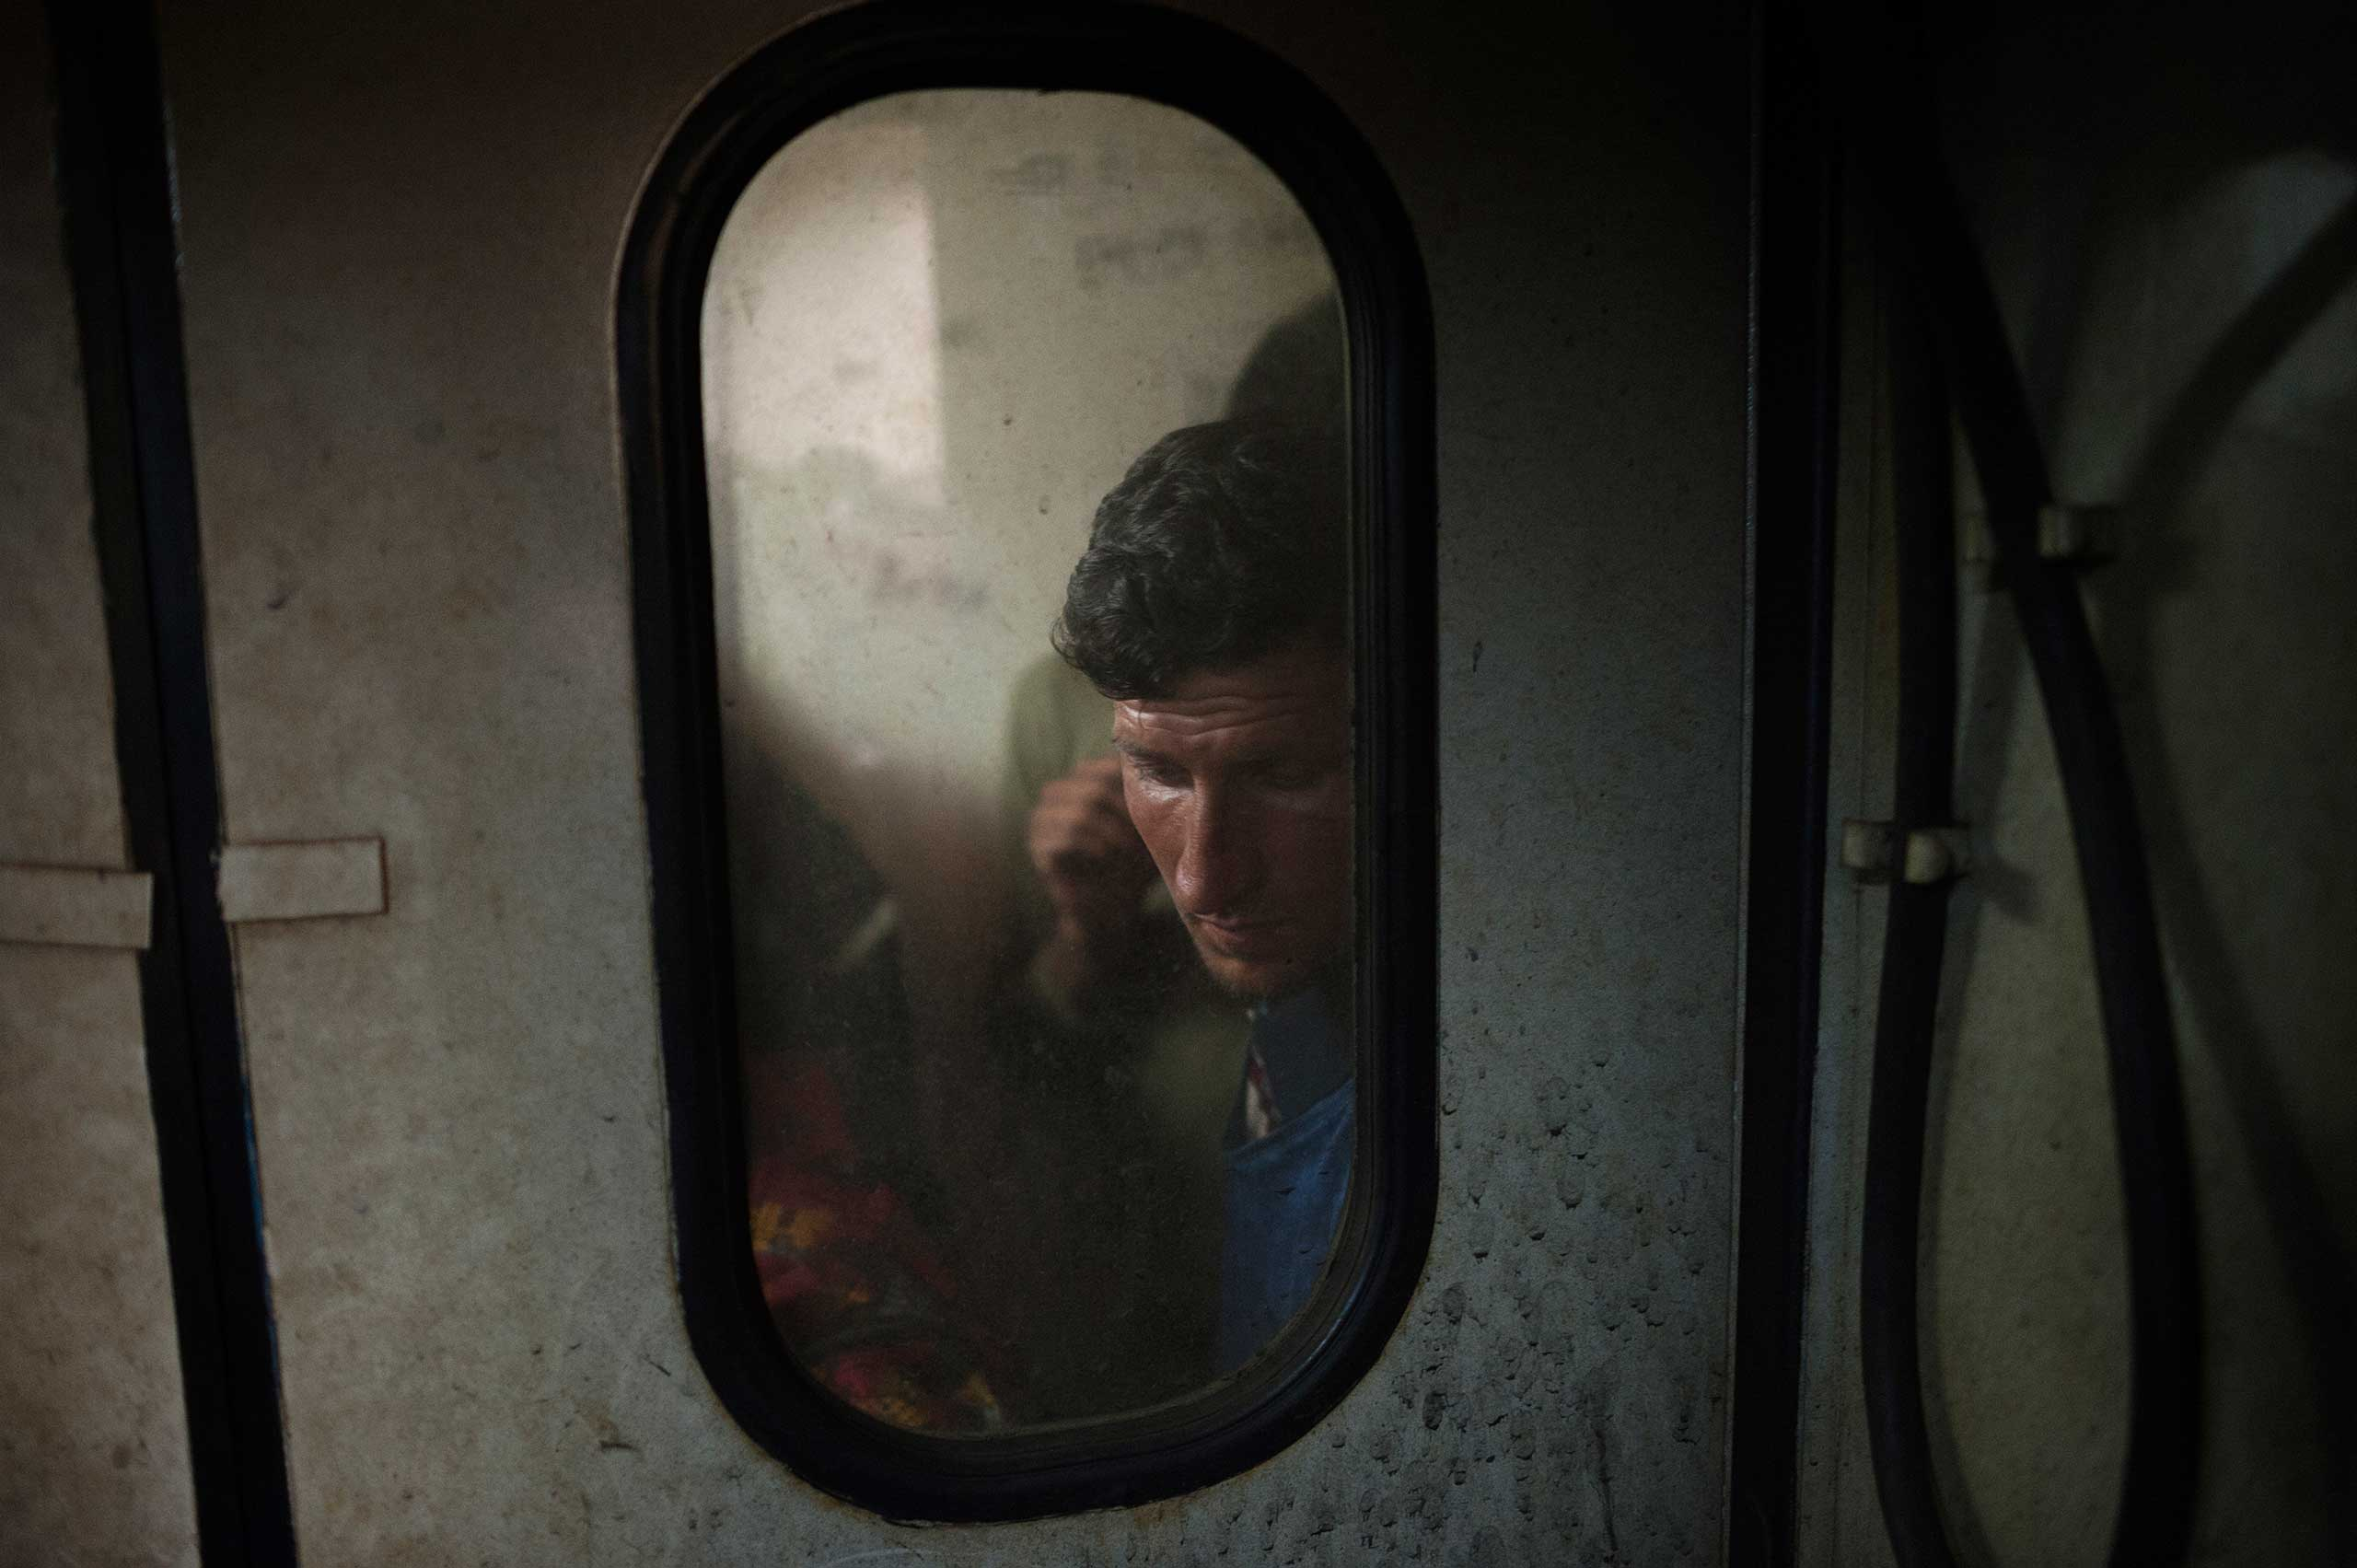 The New York Times Lens blog: Photographing Europe's Migrant Crisis, Year After Year                               Afghan and Pakistani migrants traveling on a train started from Belgrade, Serbia, toward Subotica, the arrival point of most migrants trying to cross the border between Serbia and Hungary, on July 14, 2015.                                Ph.Giulio Piscitelli